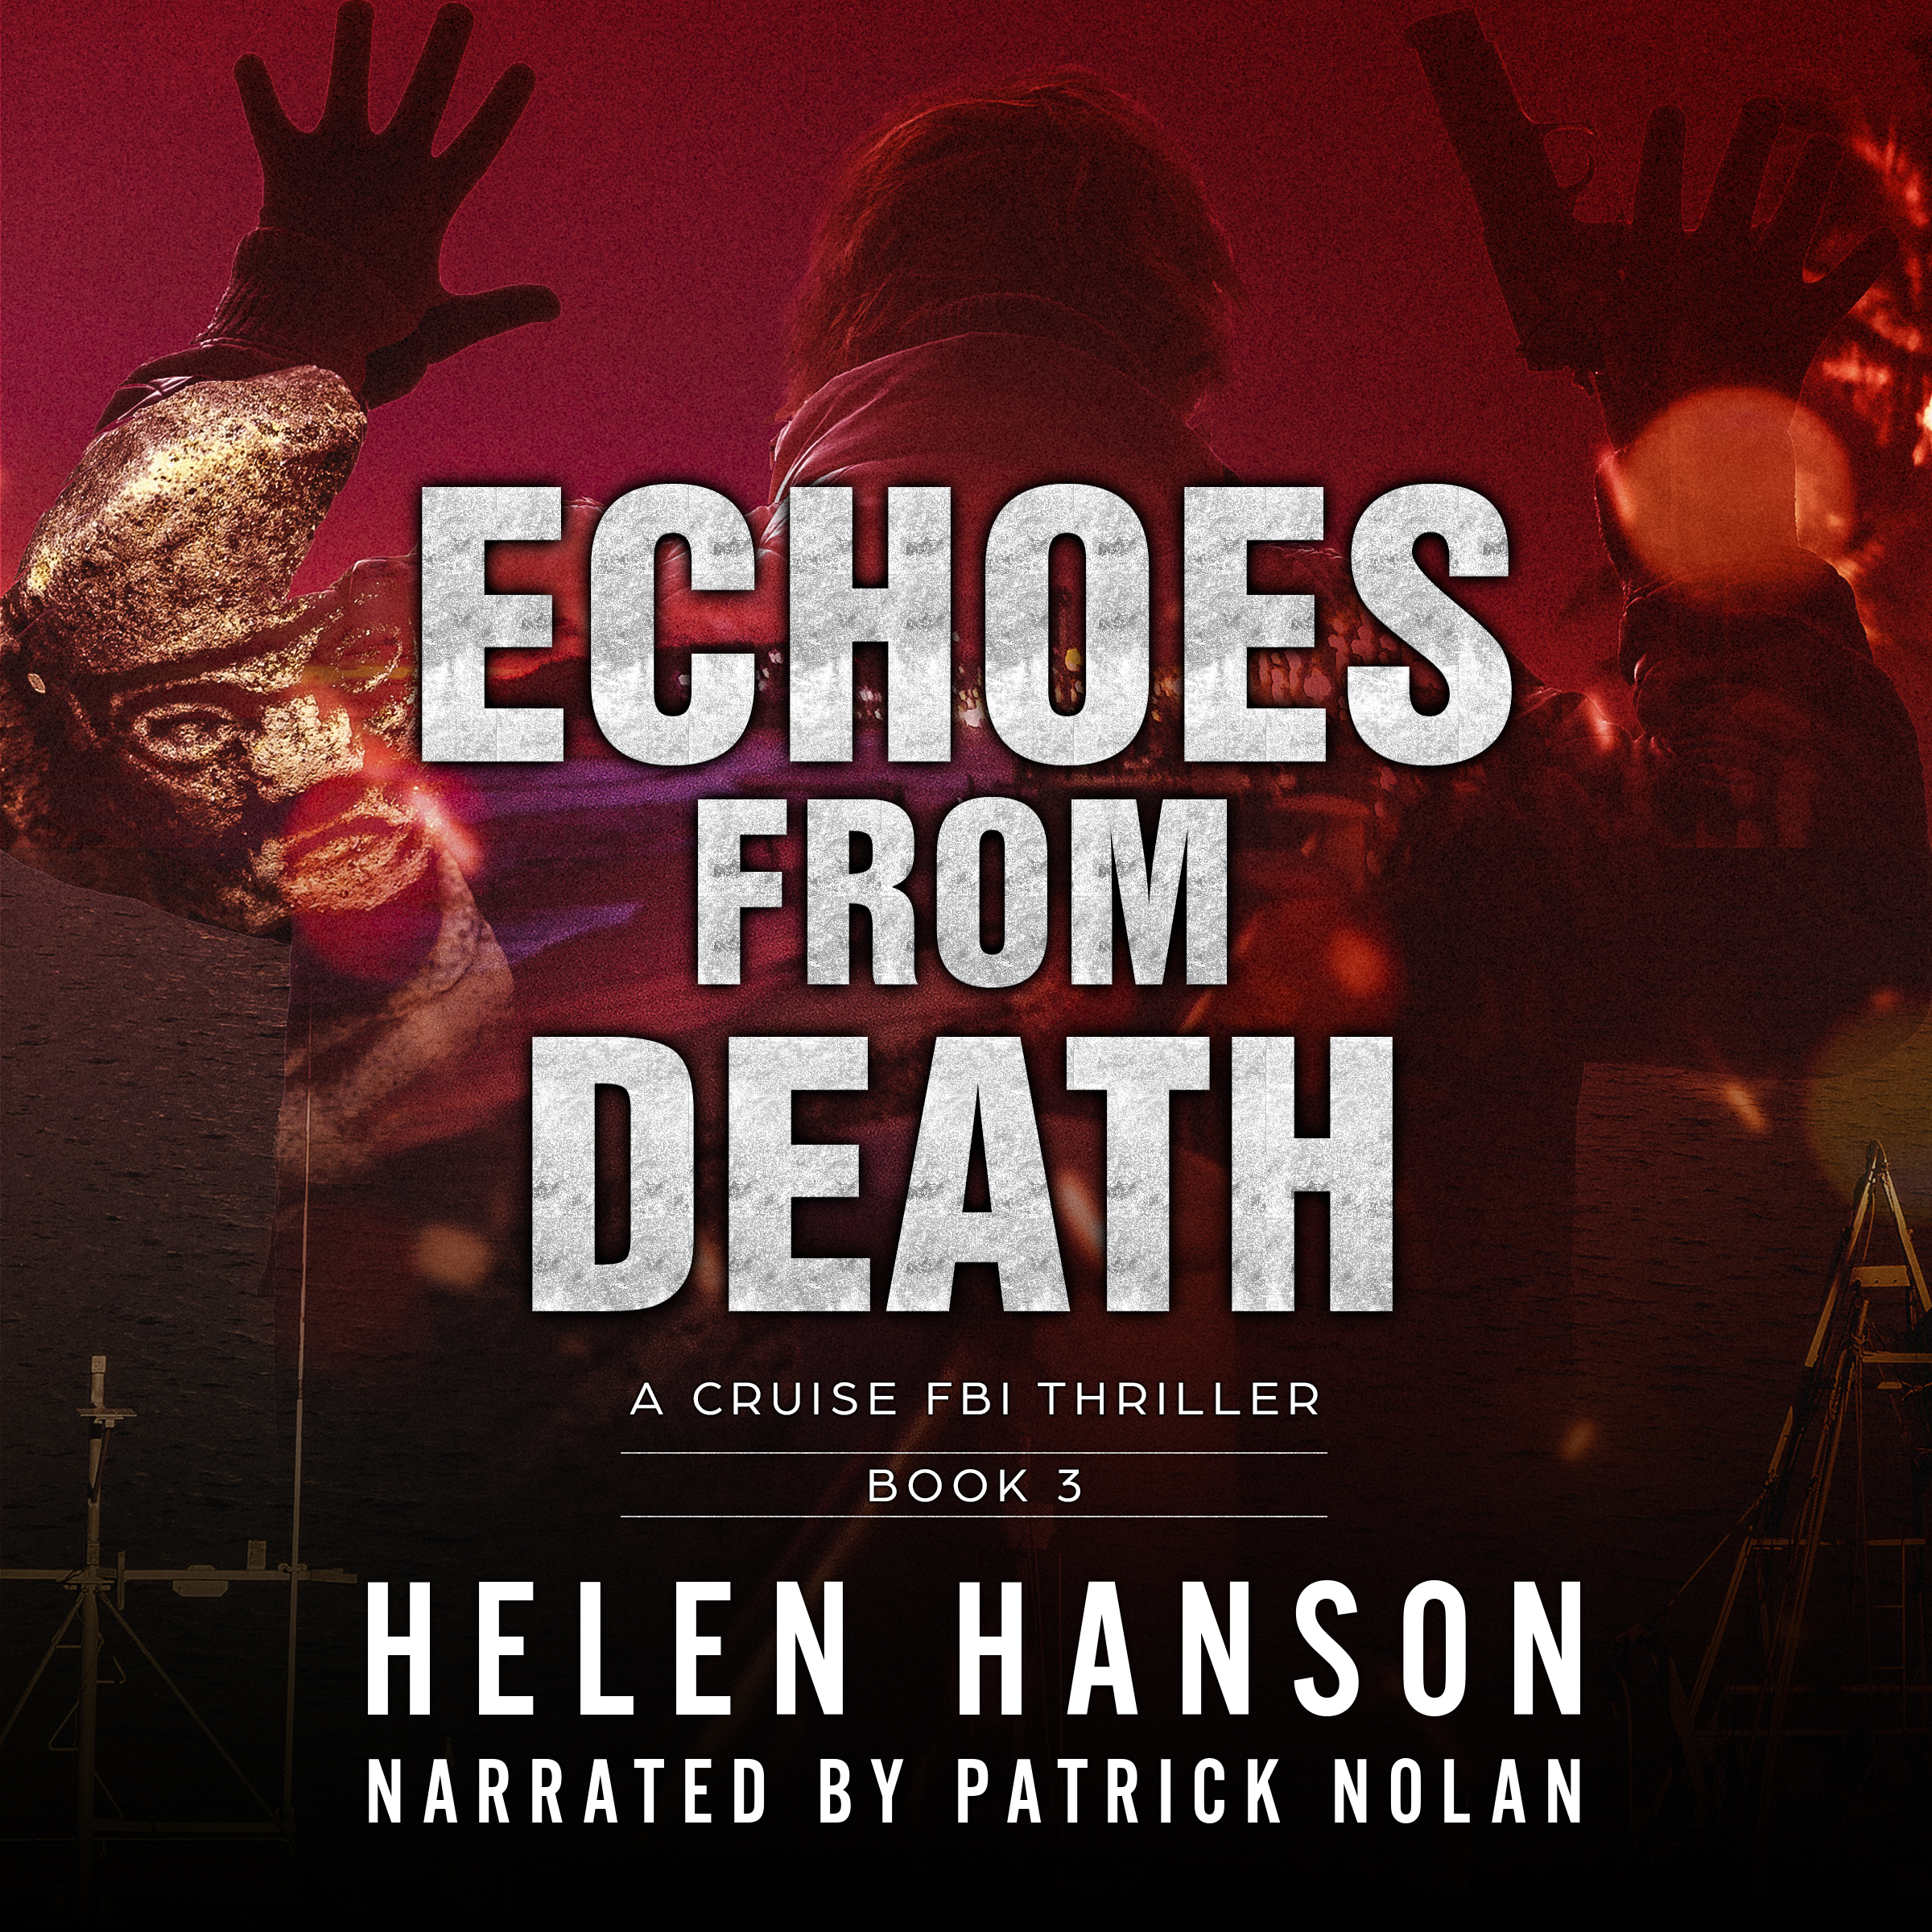 Echoes From Death, The Cruise FBI Thriller Book 3, mexico, drug cartel, drones, heist, artifacts, spy novels, espionage and spy thrillers, fbi thrillers, technothrillers, audiobook, audible, itunes